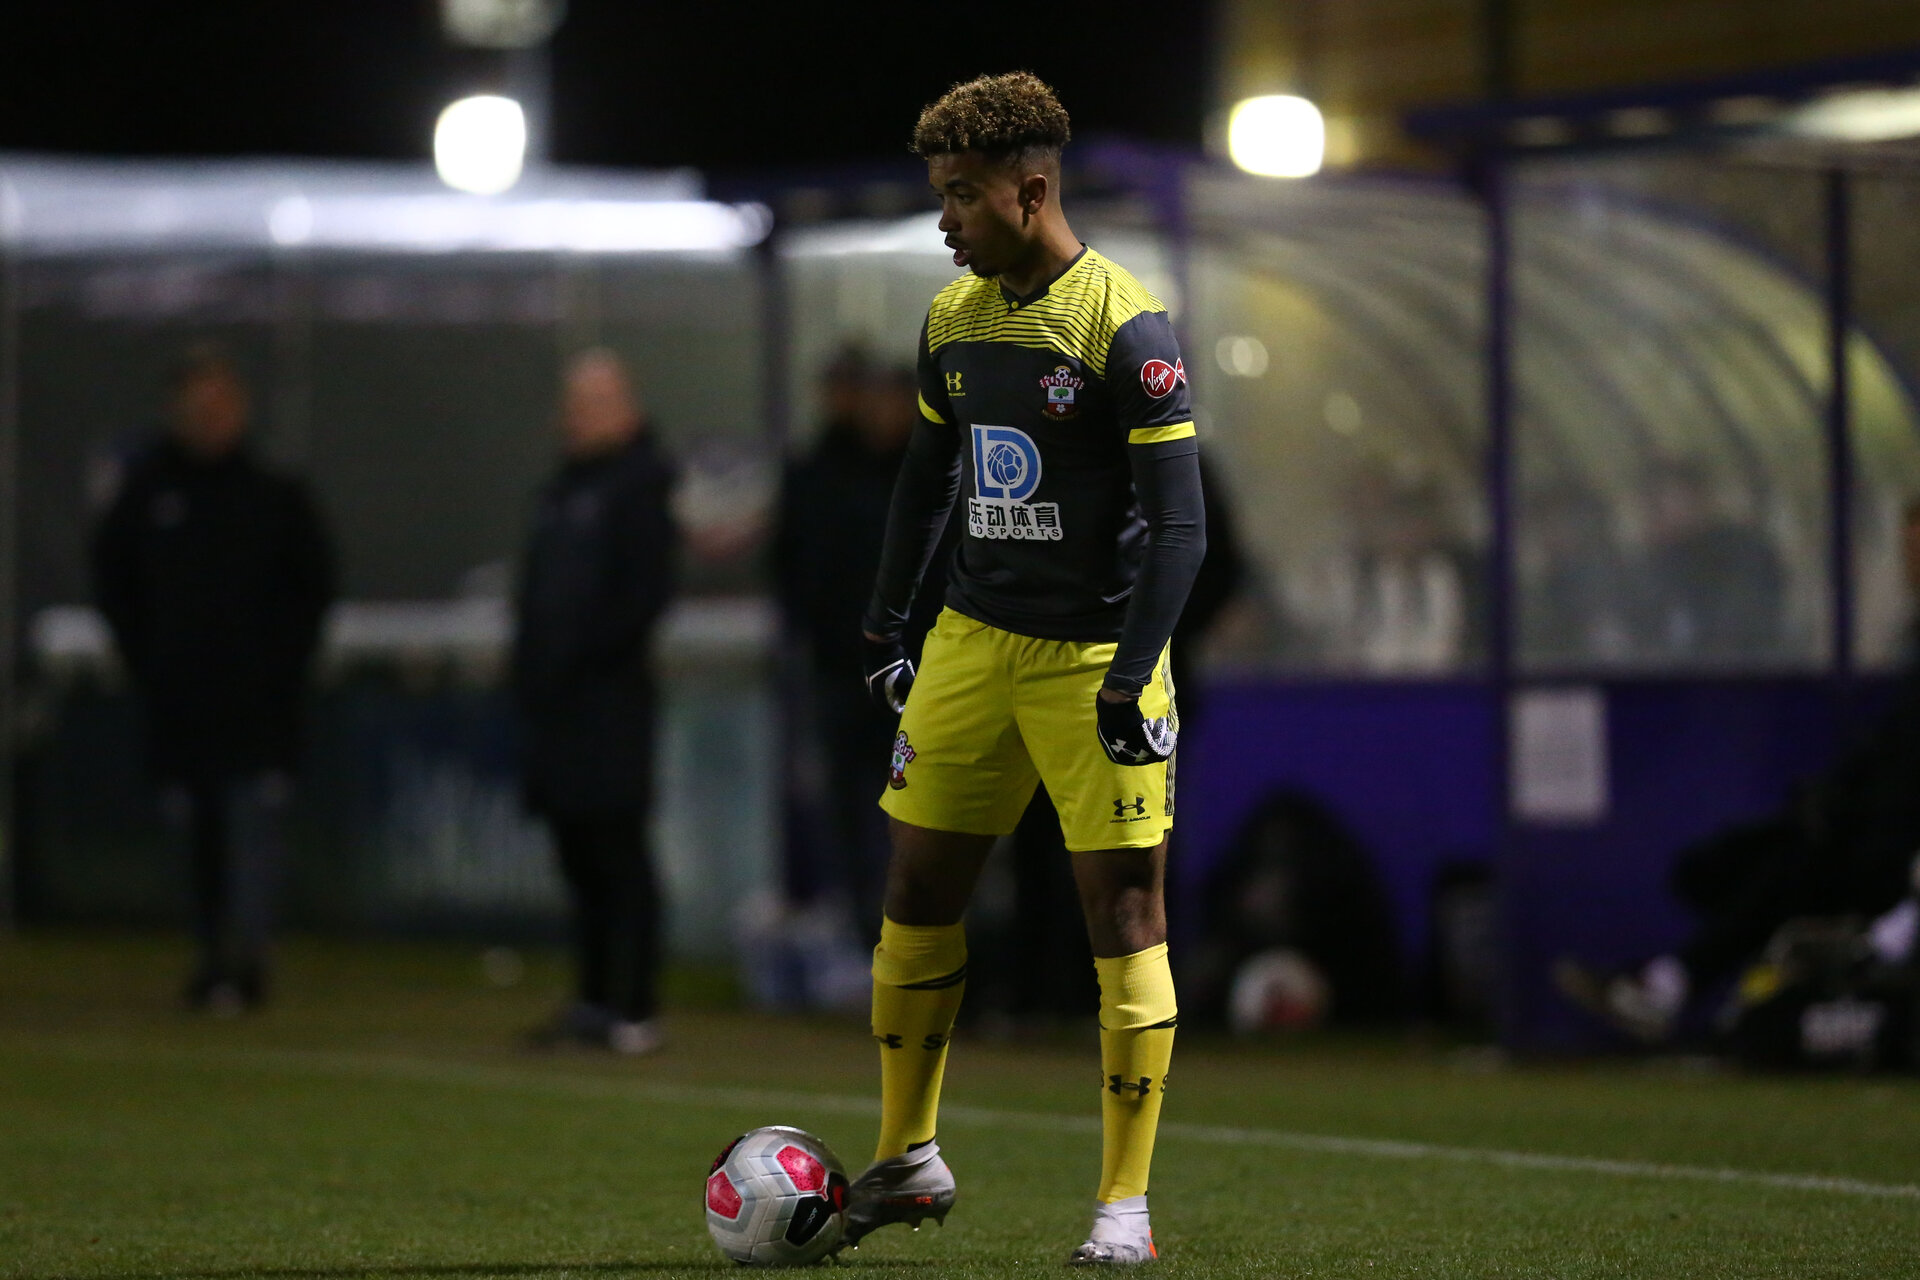 LOUGHBOUROUGH, ENGLAND - DECEMBER 10: Enzo Robise during Premier League International Cup match between Derby County and Southampton at Loughborough University Stadium on December 10 2019 in Loughborough, England (Photo by Isabelle Field/Southampton FC via Getty Images)